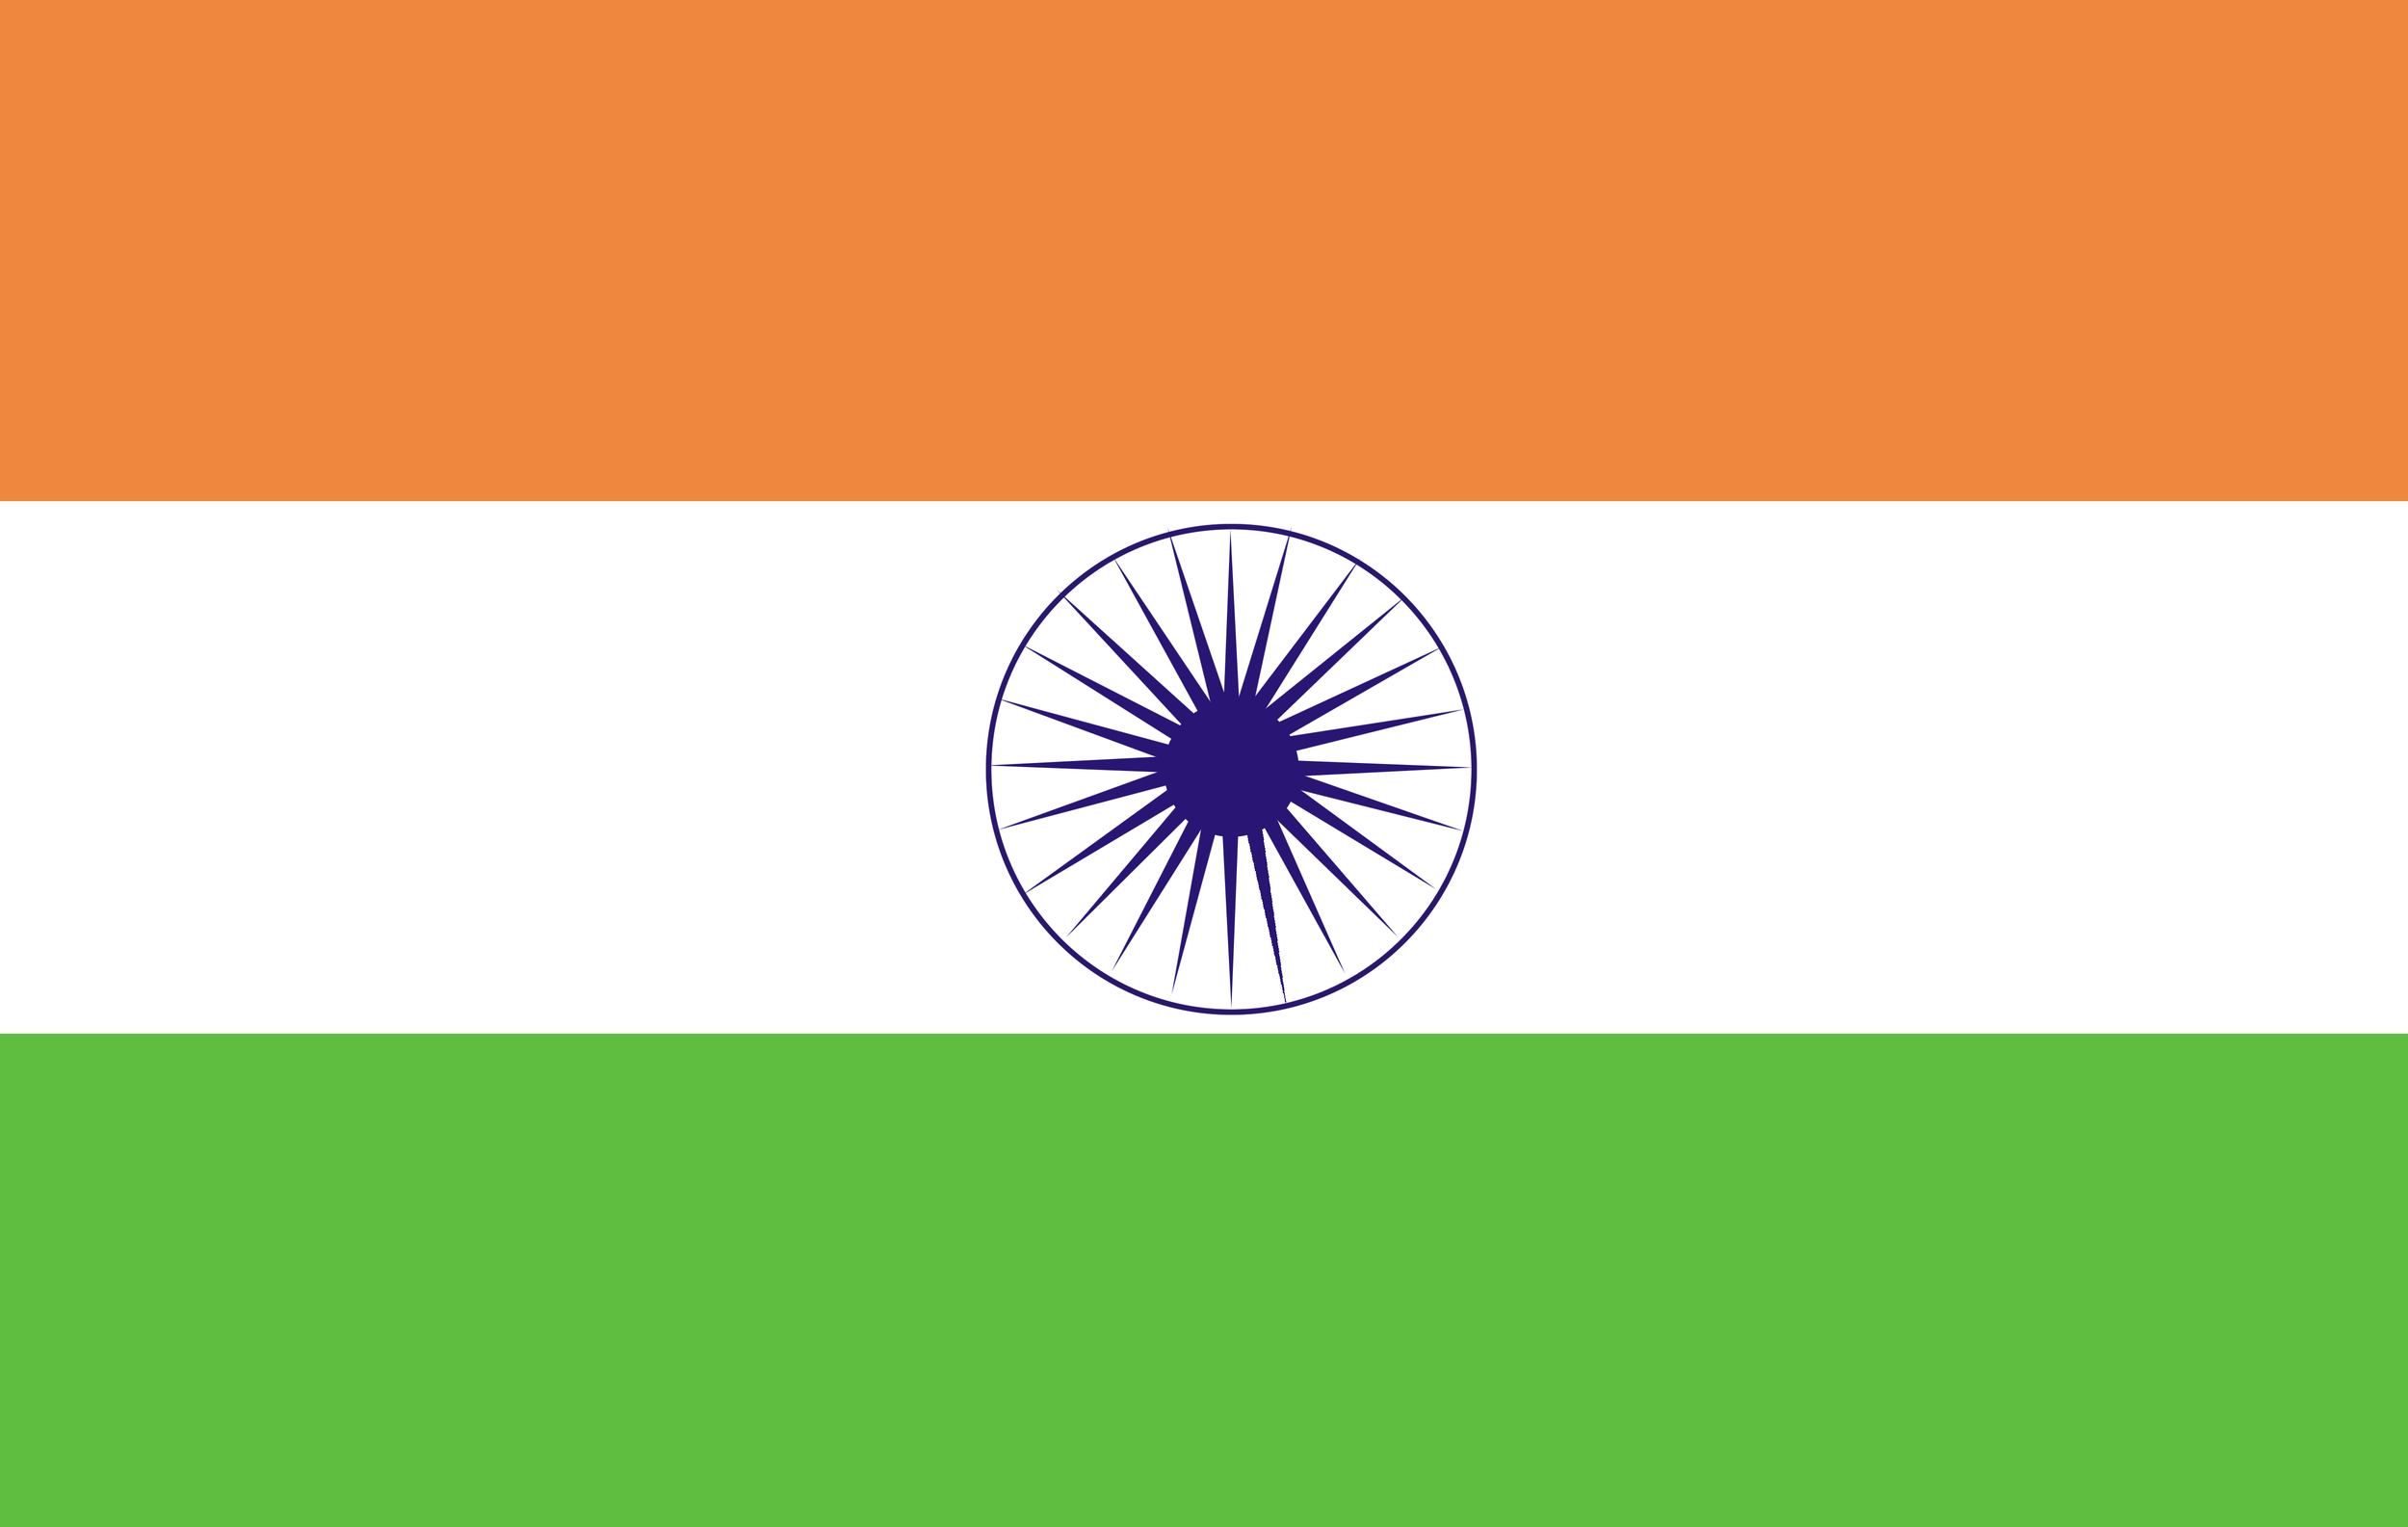 """The central symbol in the Indian flag is the  Ashoka Chakra, itself  a depiction of the  dharmachakra  ; represented with 24 spokes. According to Wikipedia, """"When  Buddha  achieved  nirvana  (Nibbana) at Gaya, he came to Sarnath on the outskirts of Varanasi. There he found his five disciples (panch vargiya Bhikshu) Ashwajeet, Mahanaam, Kaundinya, Bhadrak and Kashyap, who had earlier abandoned him. He preached his first sermon to them, thereby promulgating the  Dharmachakra  . This is the motif taken up by Ashoka and portrayed on top of his pillars."""""""